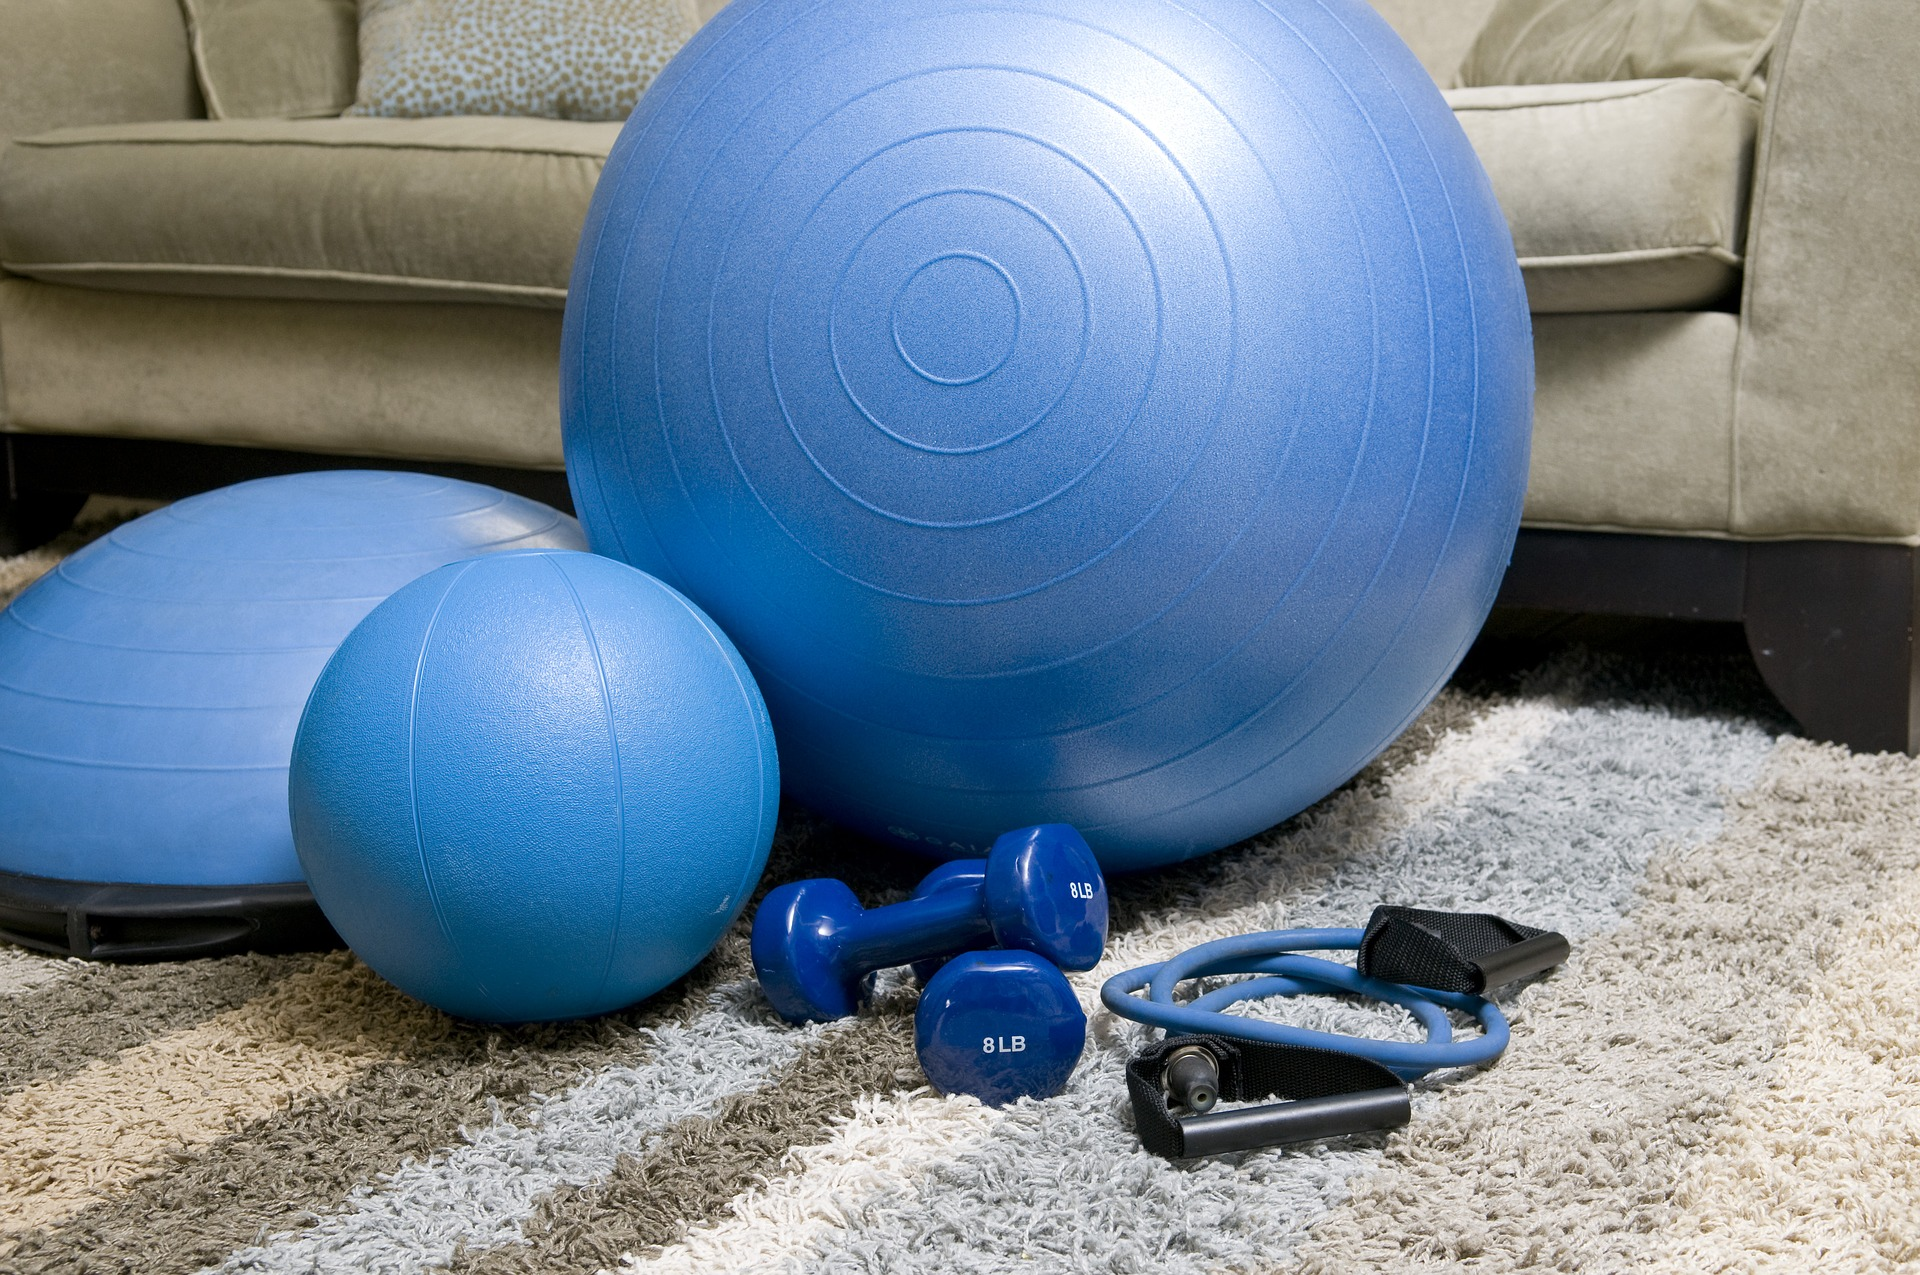 How Can I Get A Lean Body Working Out At Home?